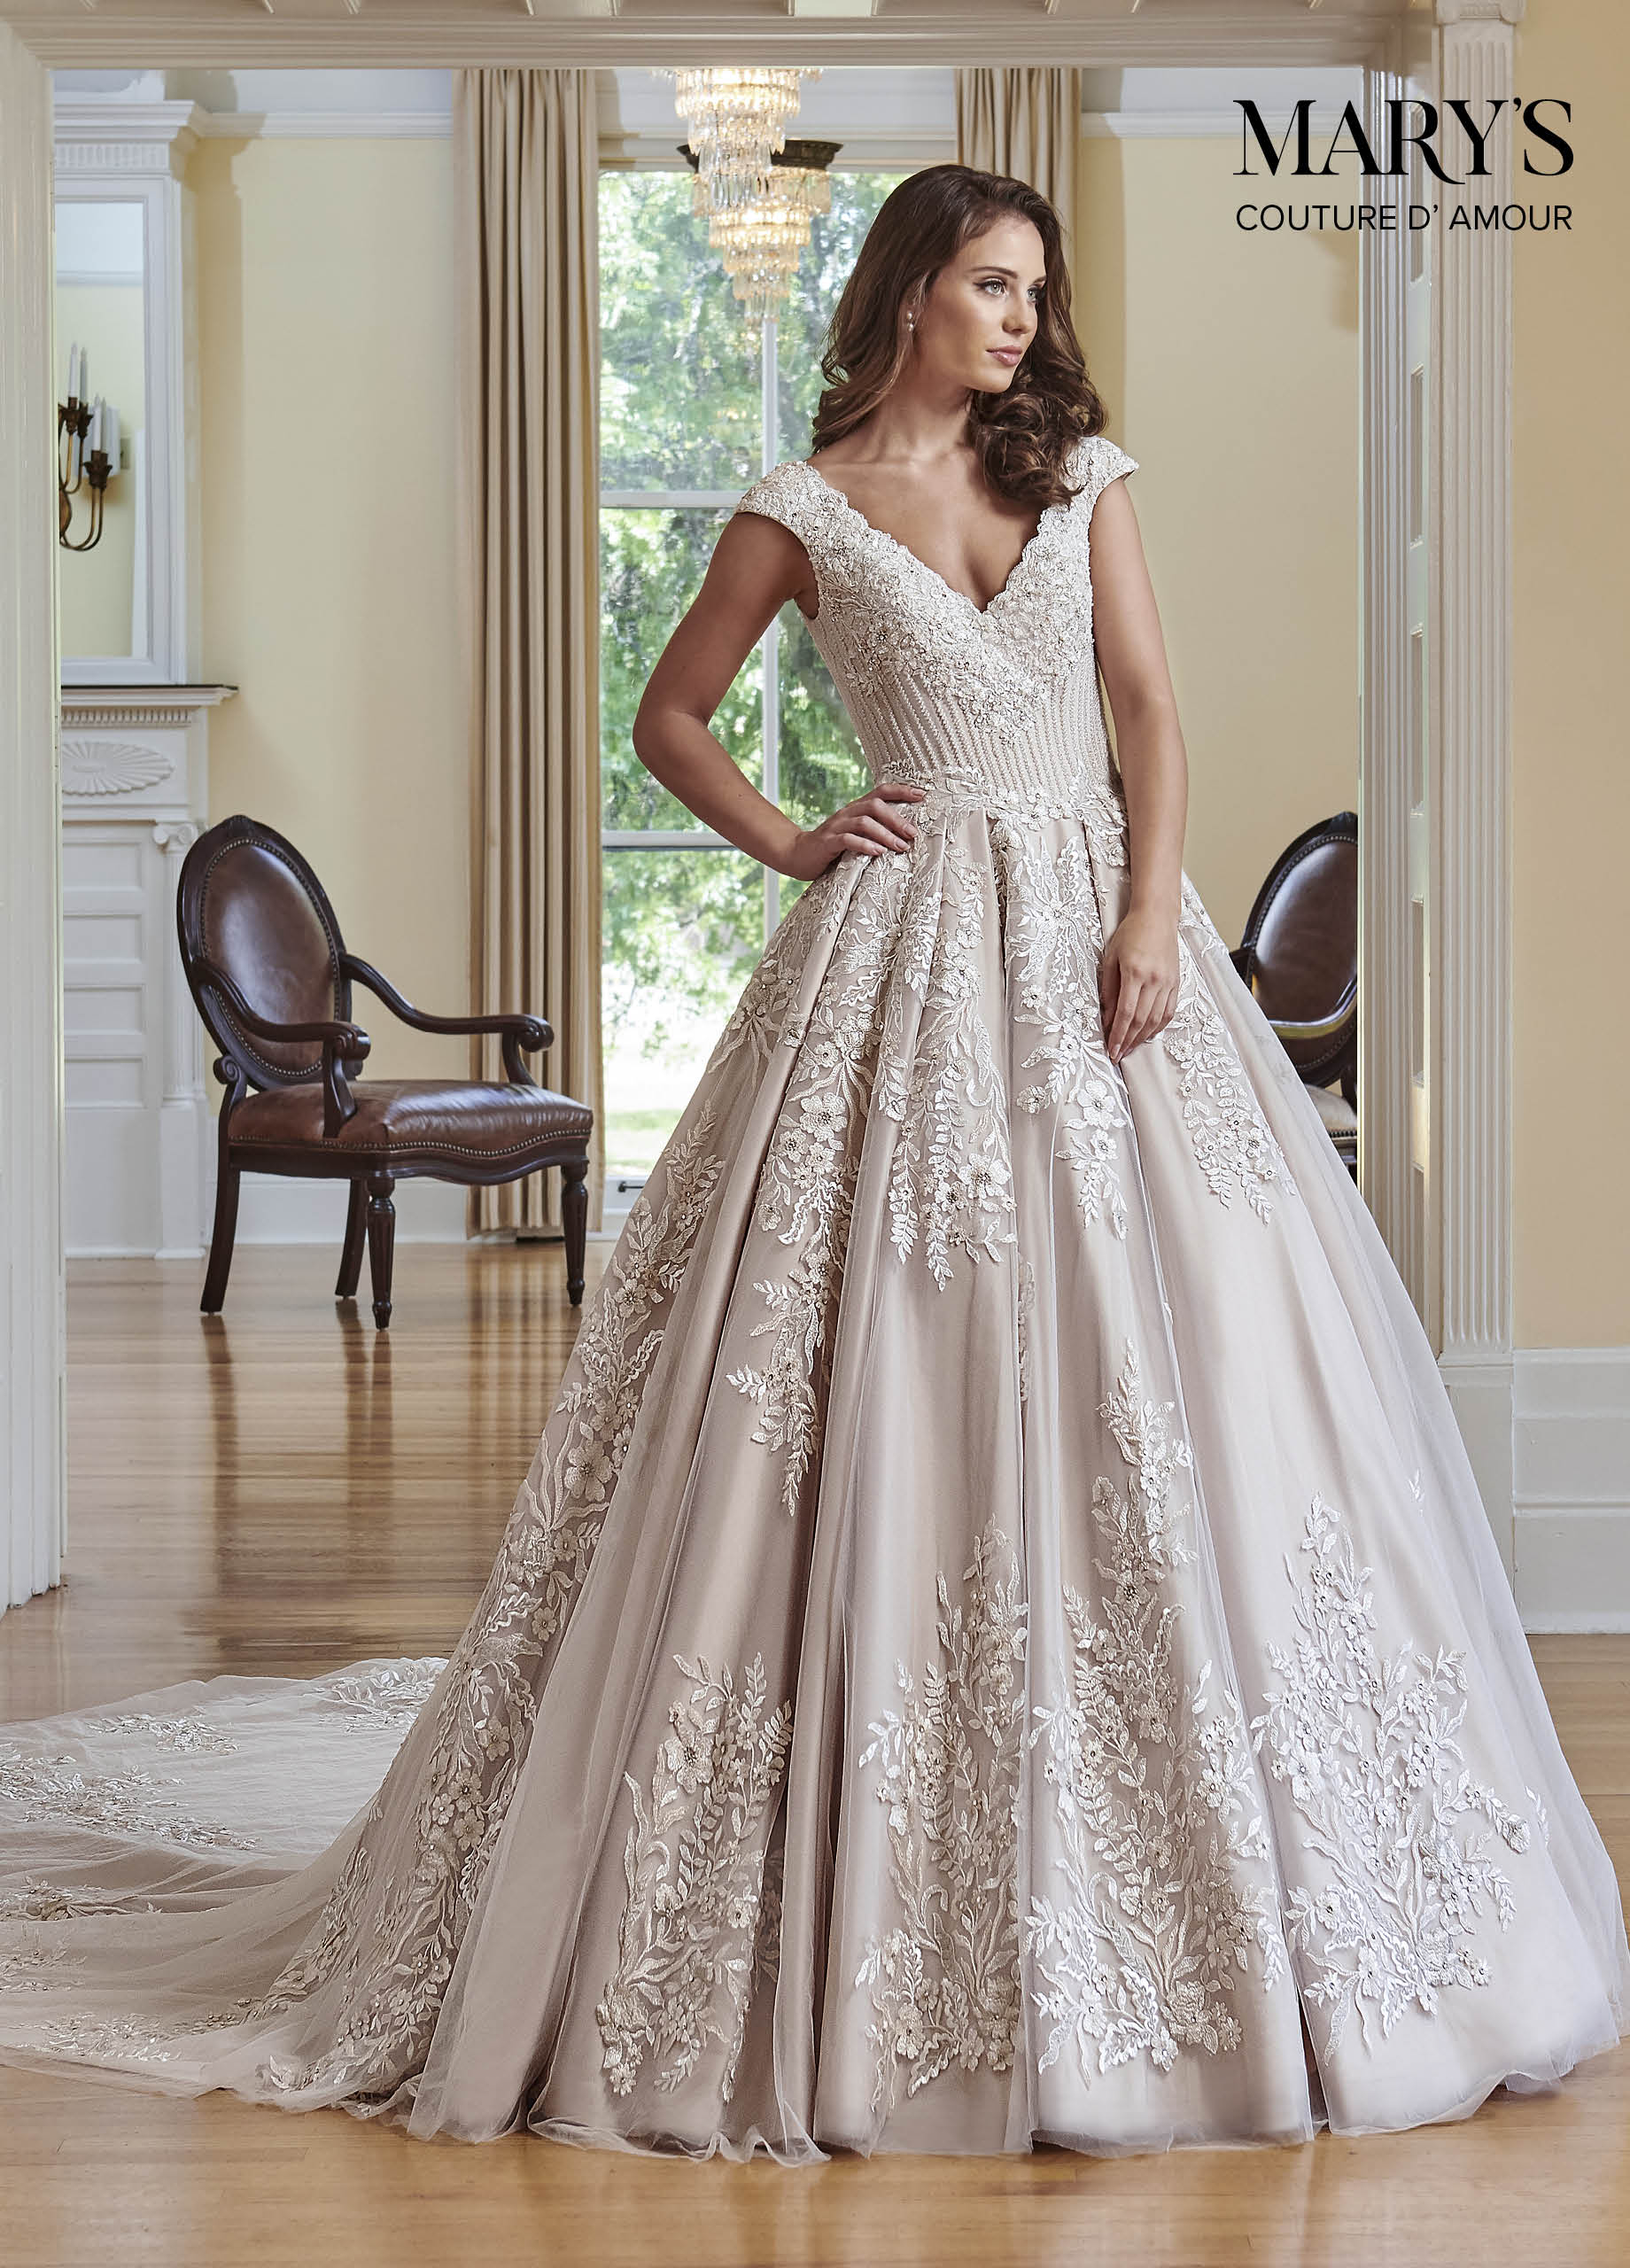 Couture Damour Bridal Dresses | Couture d'Amour | Style - MB4059